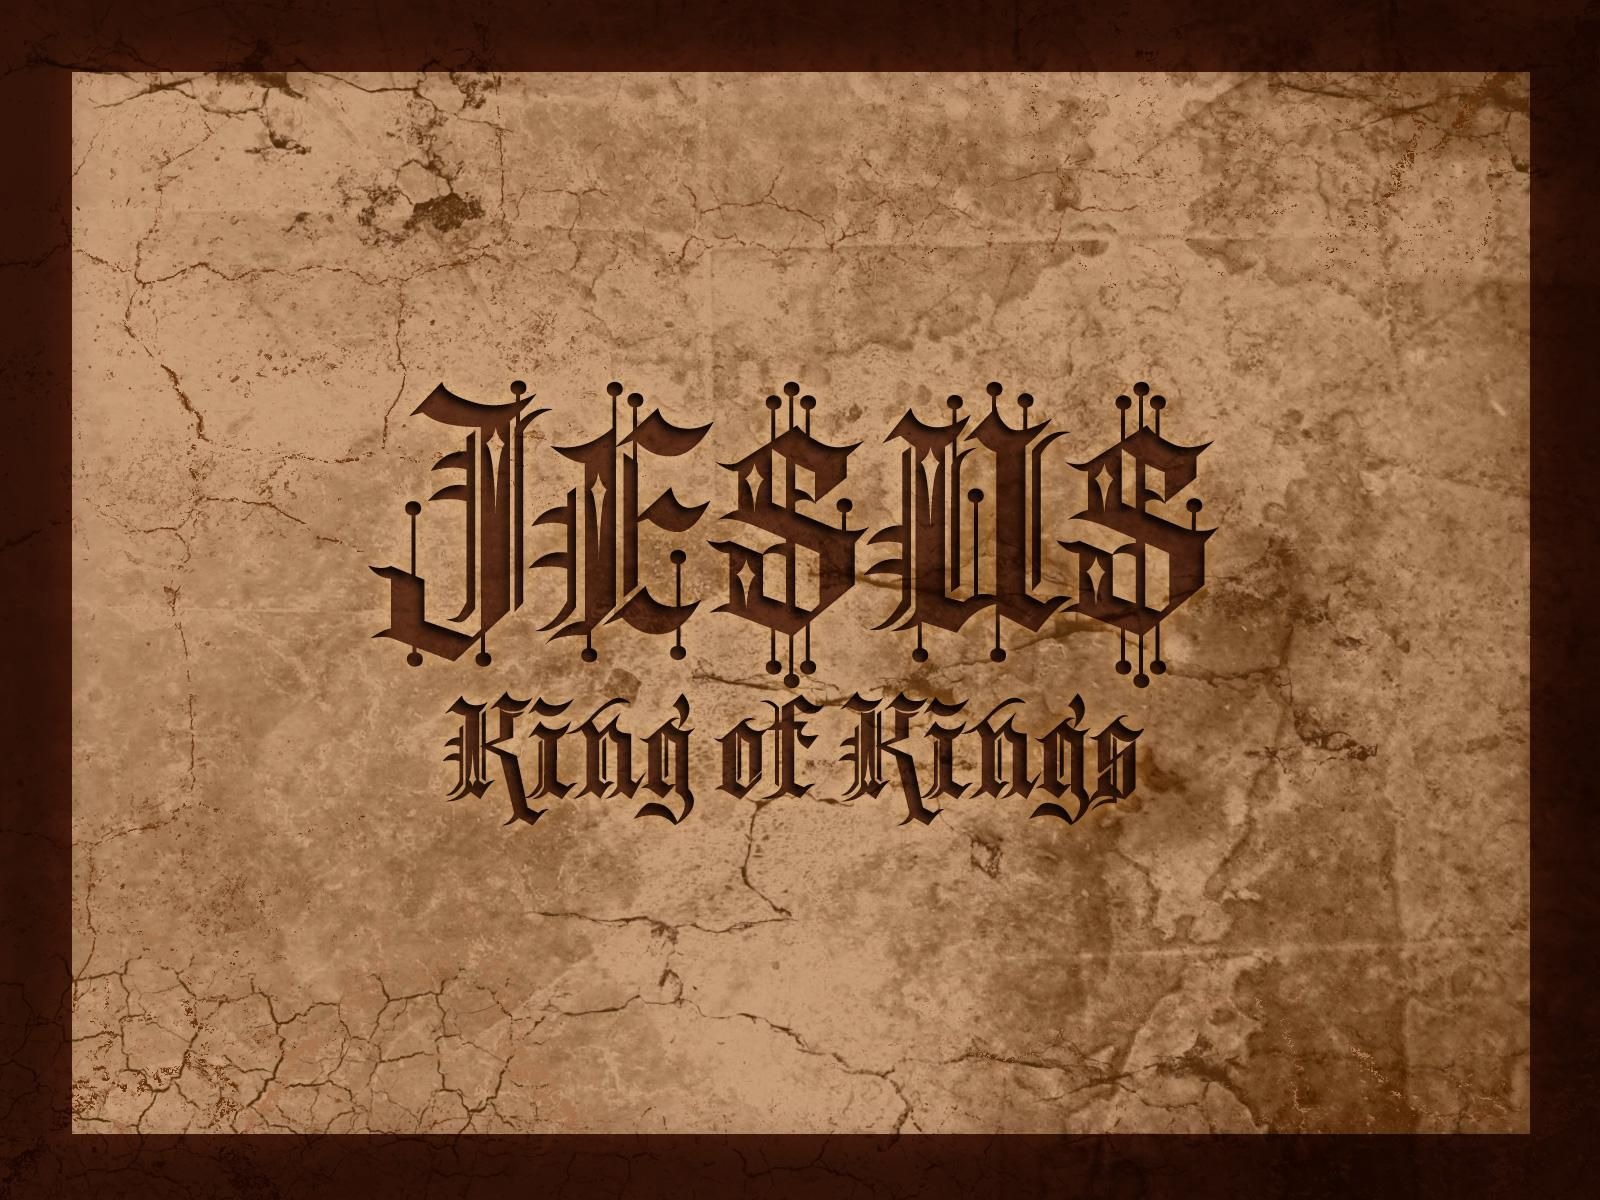 king-of-kings_1270_1600x1200